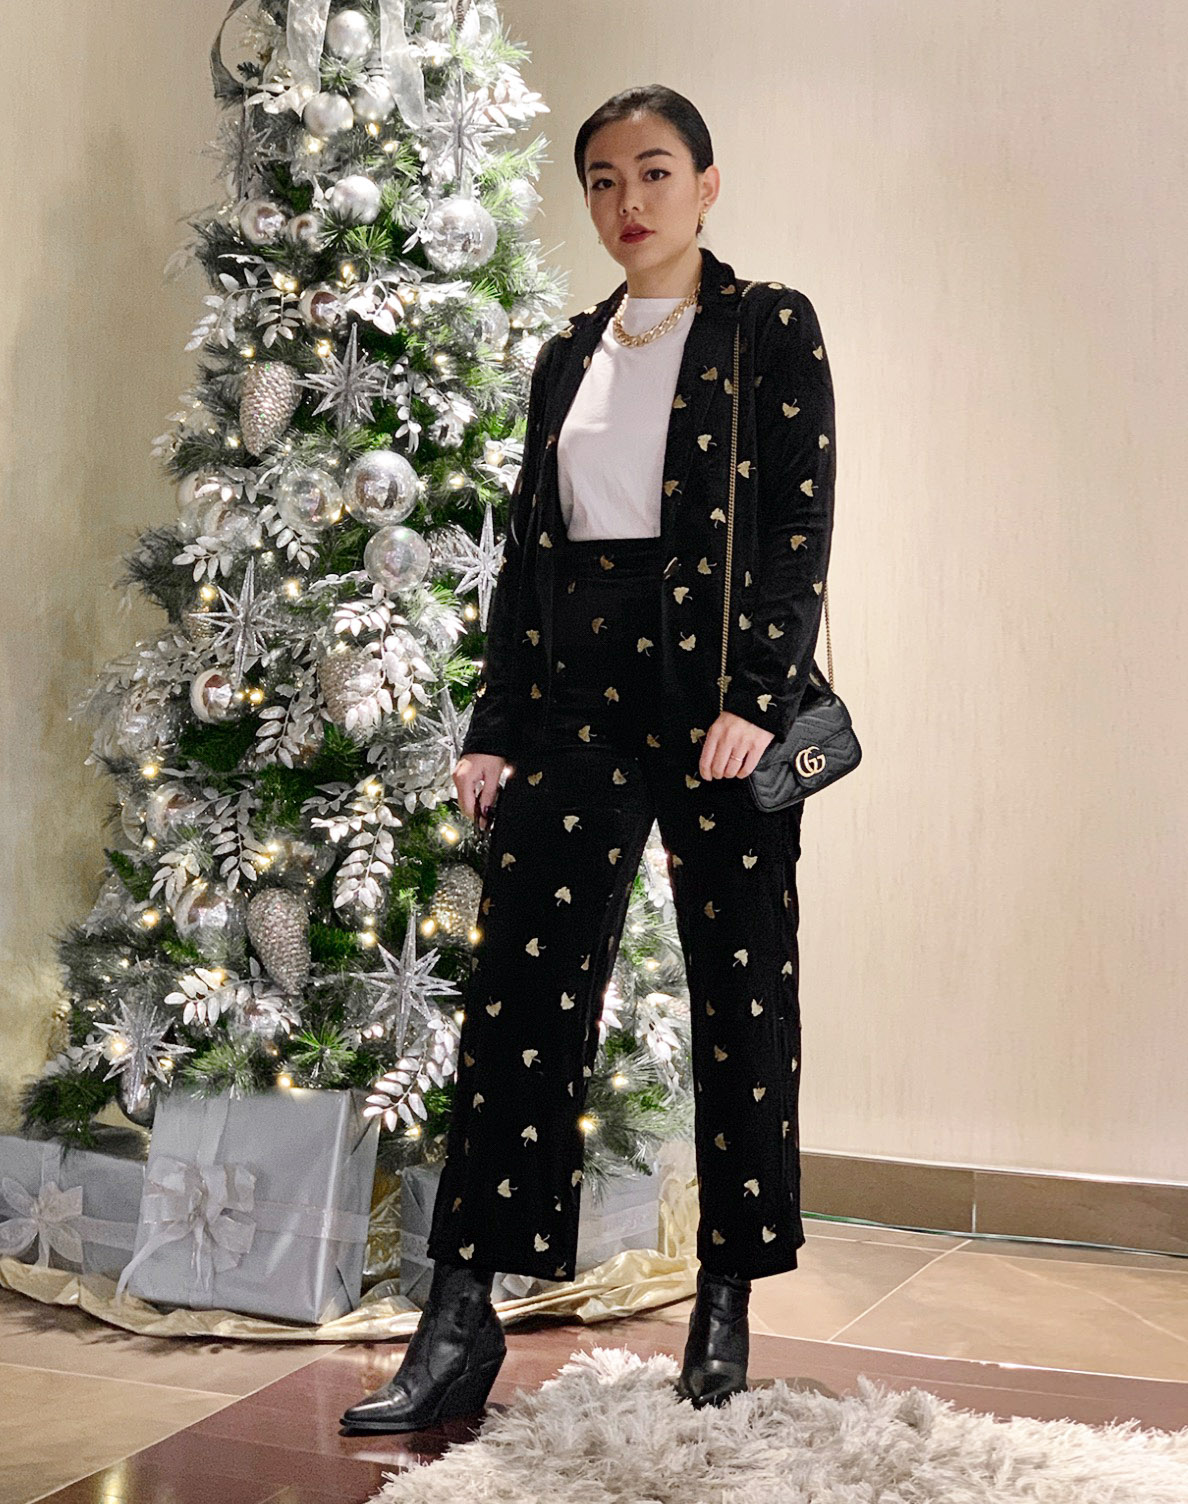 Winter Night Out Outfit - Glam Without Freezing